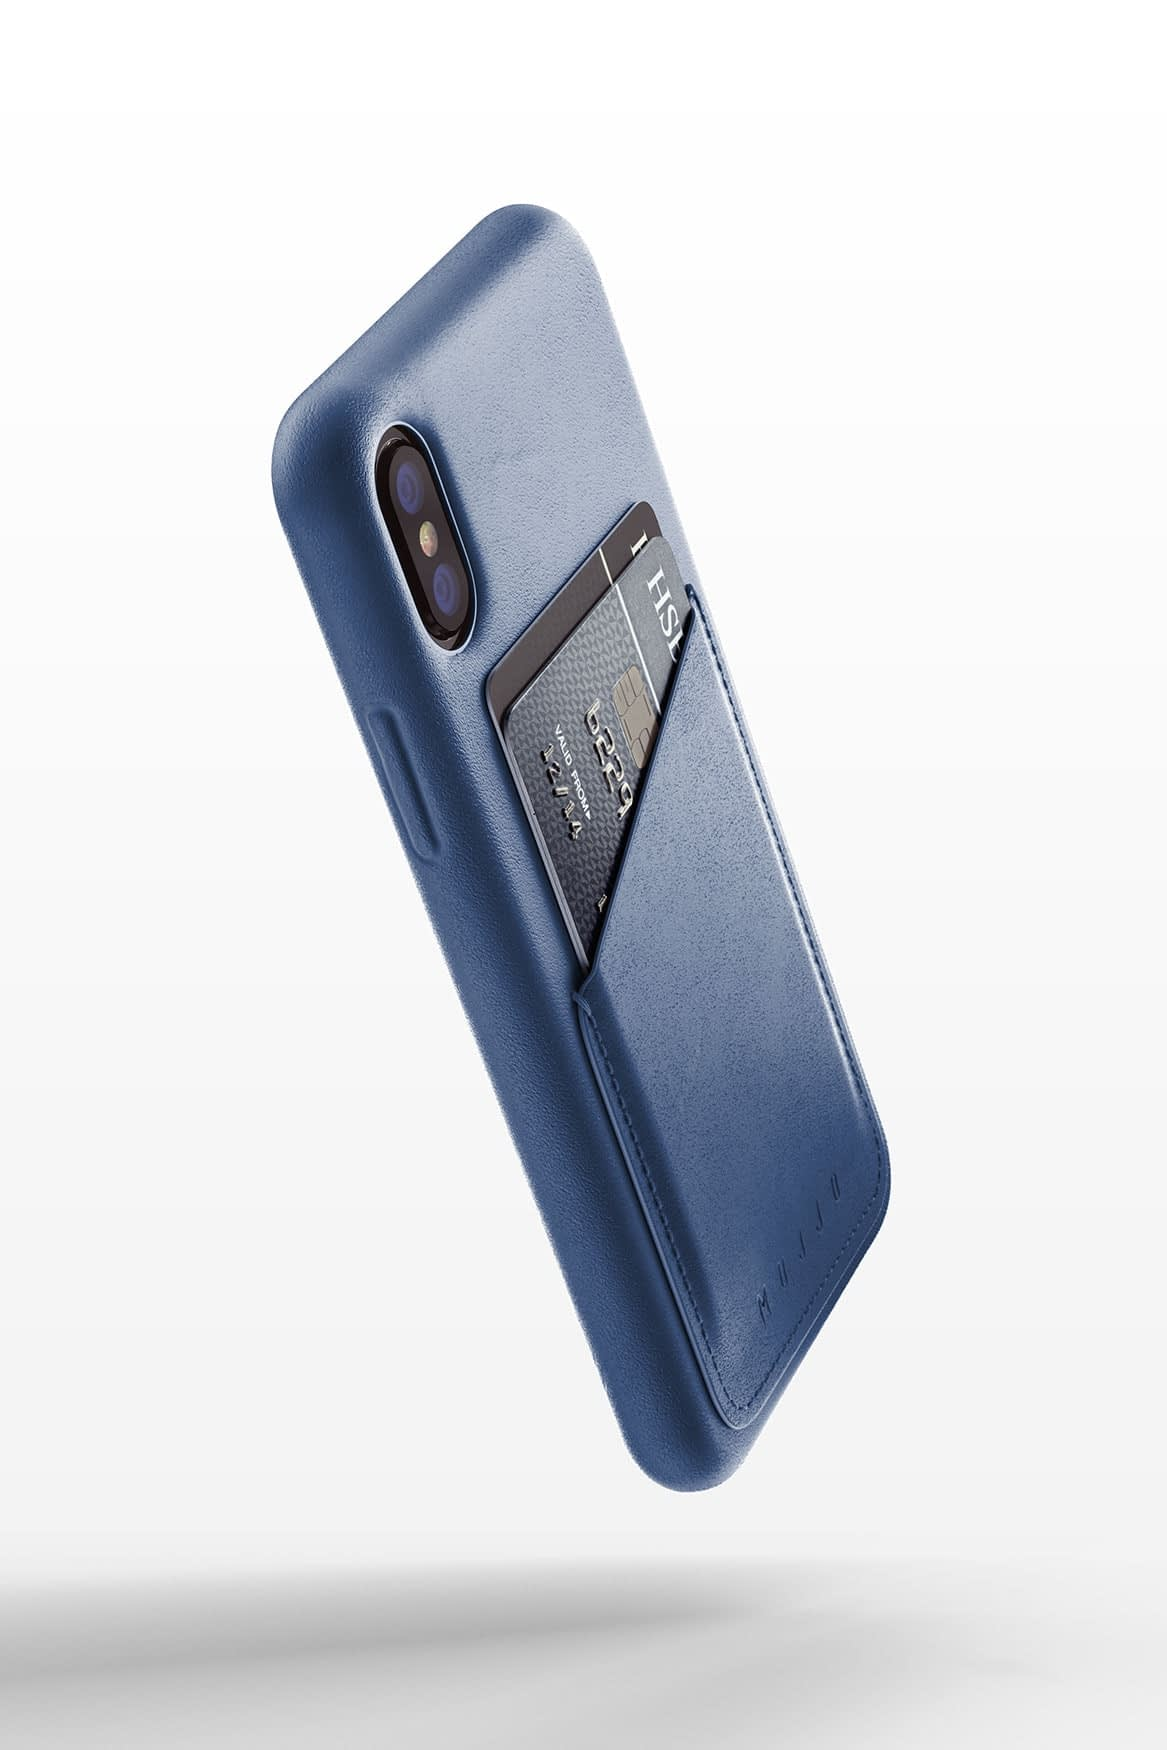 Full leather wallet case for iPhone Xs Blue 04